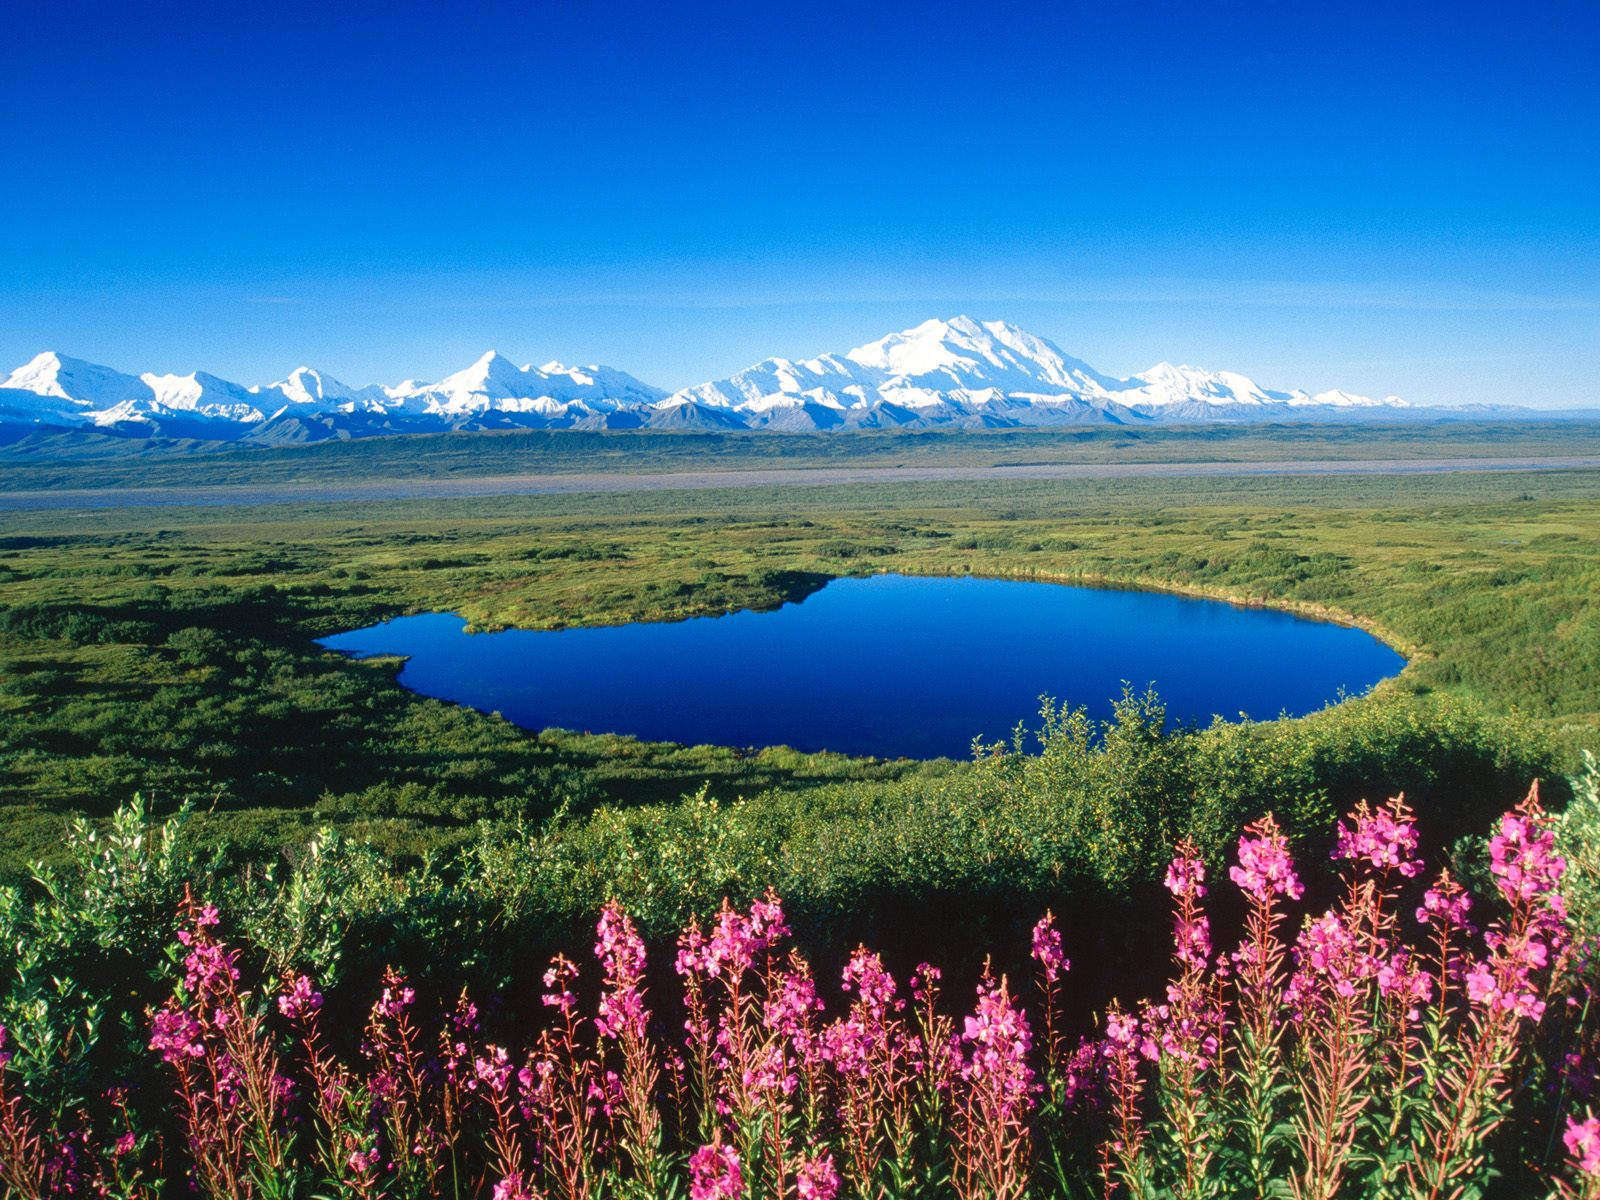 denali national park single hispanic girls Born in the spirit of teddy roosevelt and charles sheldon, denali national park and preserve's 6 million acres continue to awe and inspire -- and deserve protection.